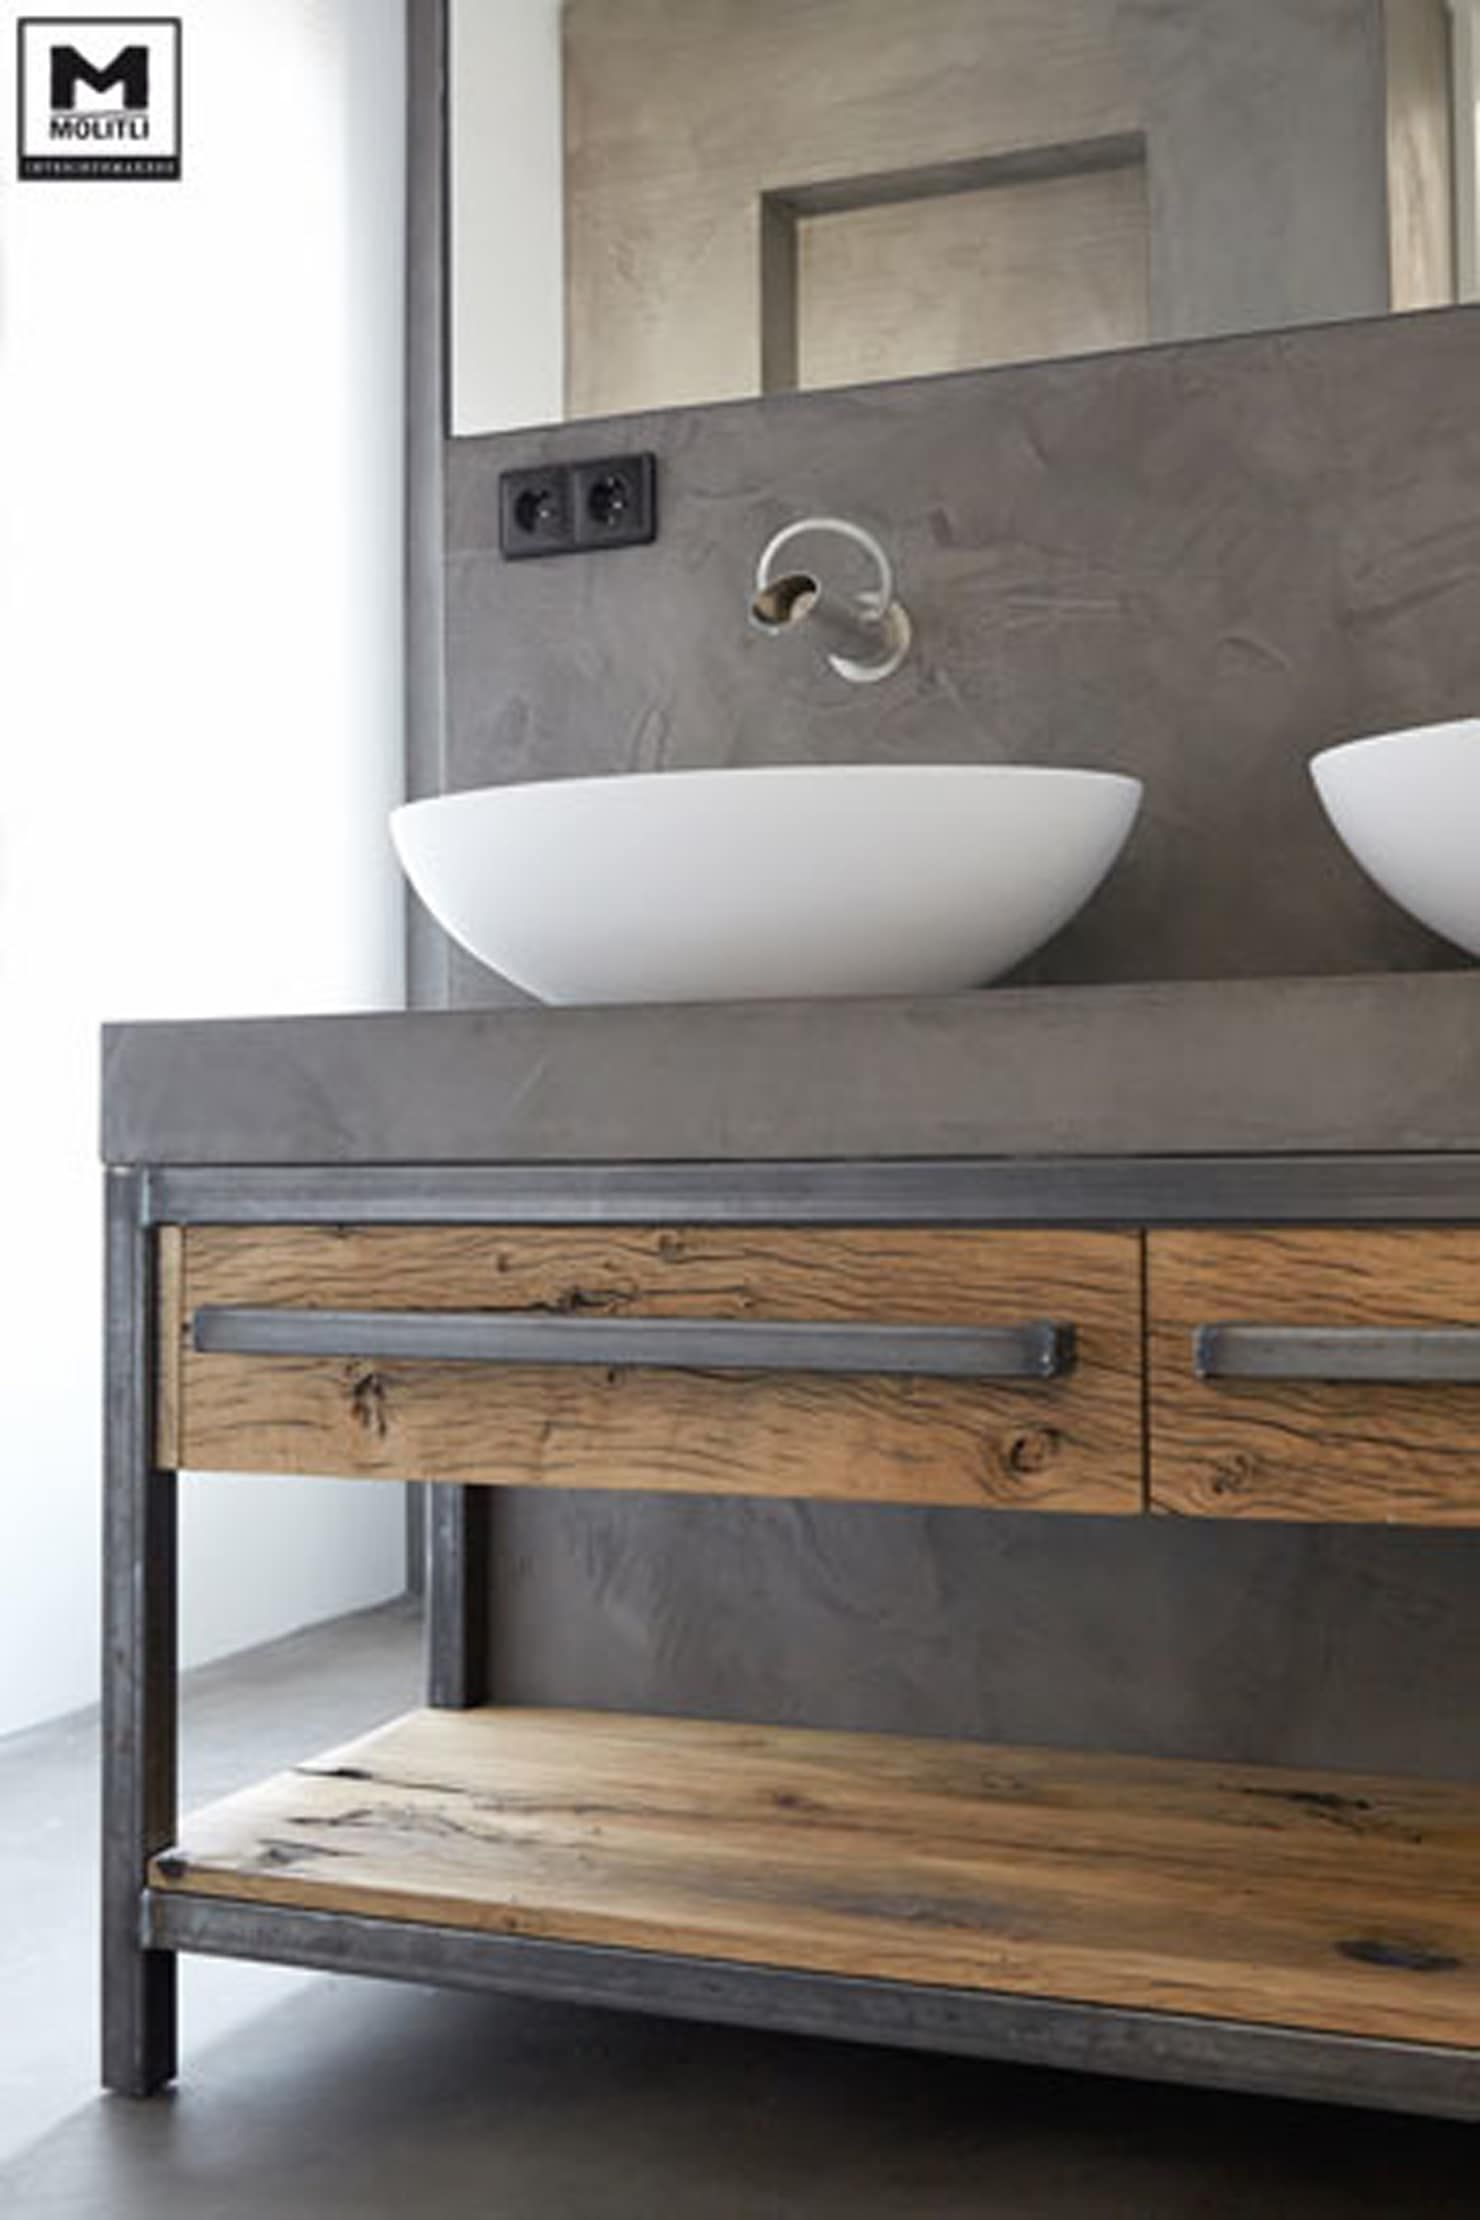 Small Bathroom Storage Ideas Is Categorically Important For Your Home Whether You Choose The Serene Bathroom Or S Idee Salle De Bain Salle De Bain Plan Douche